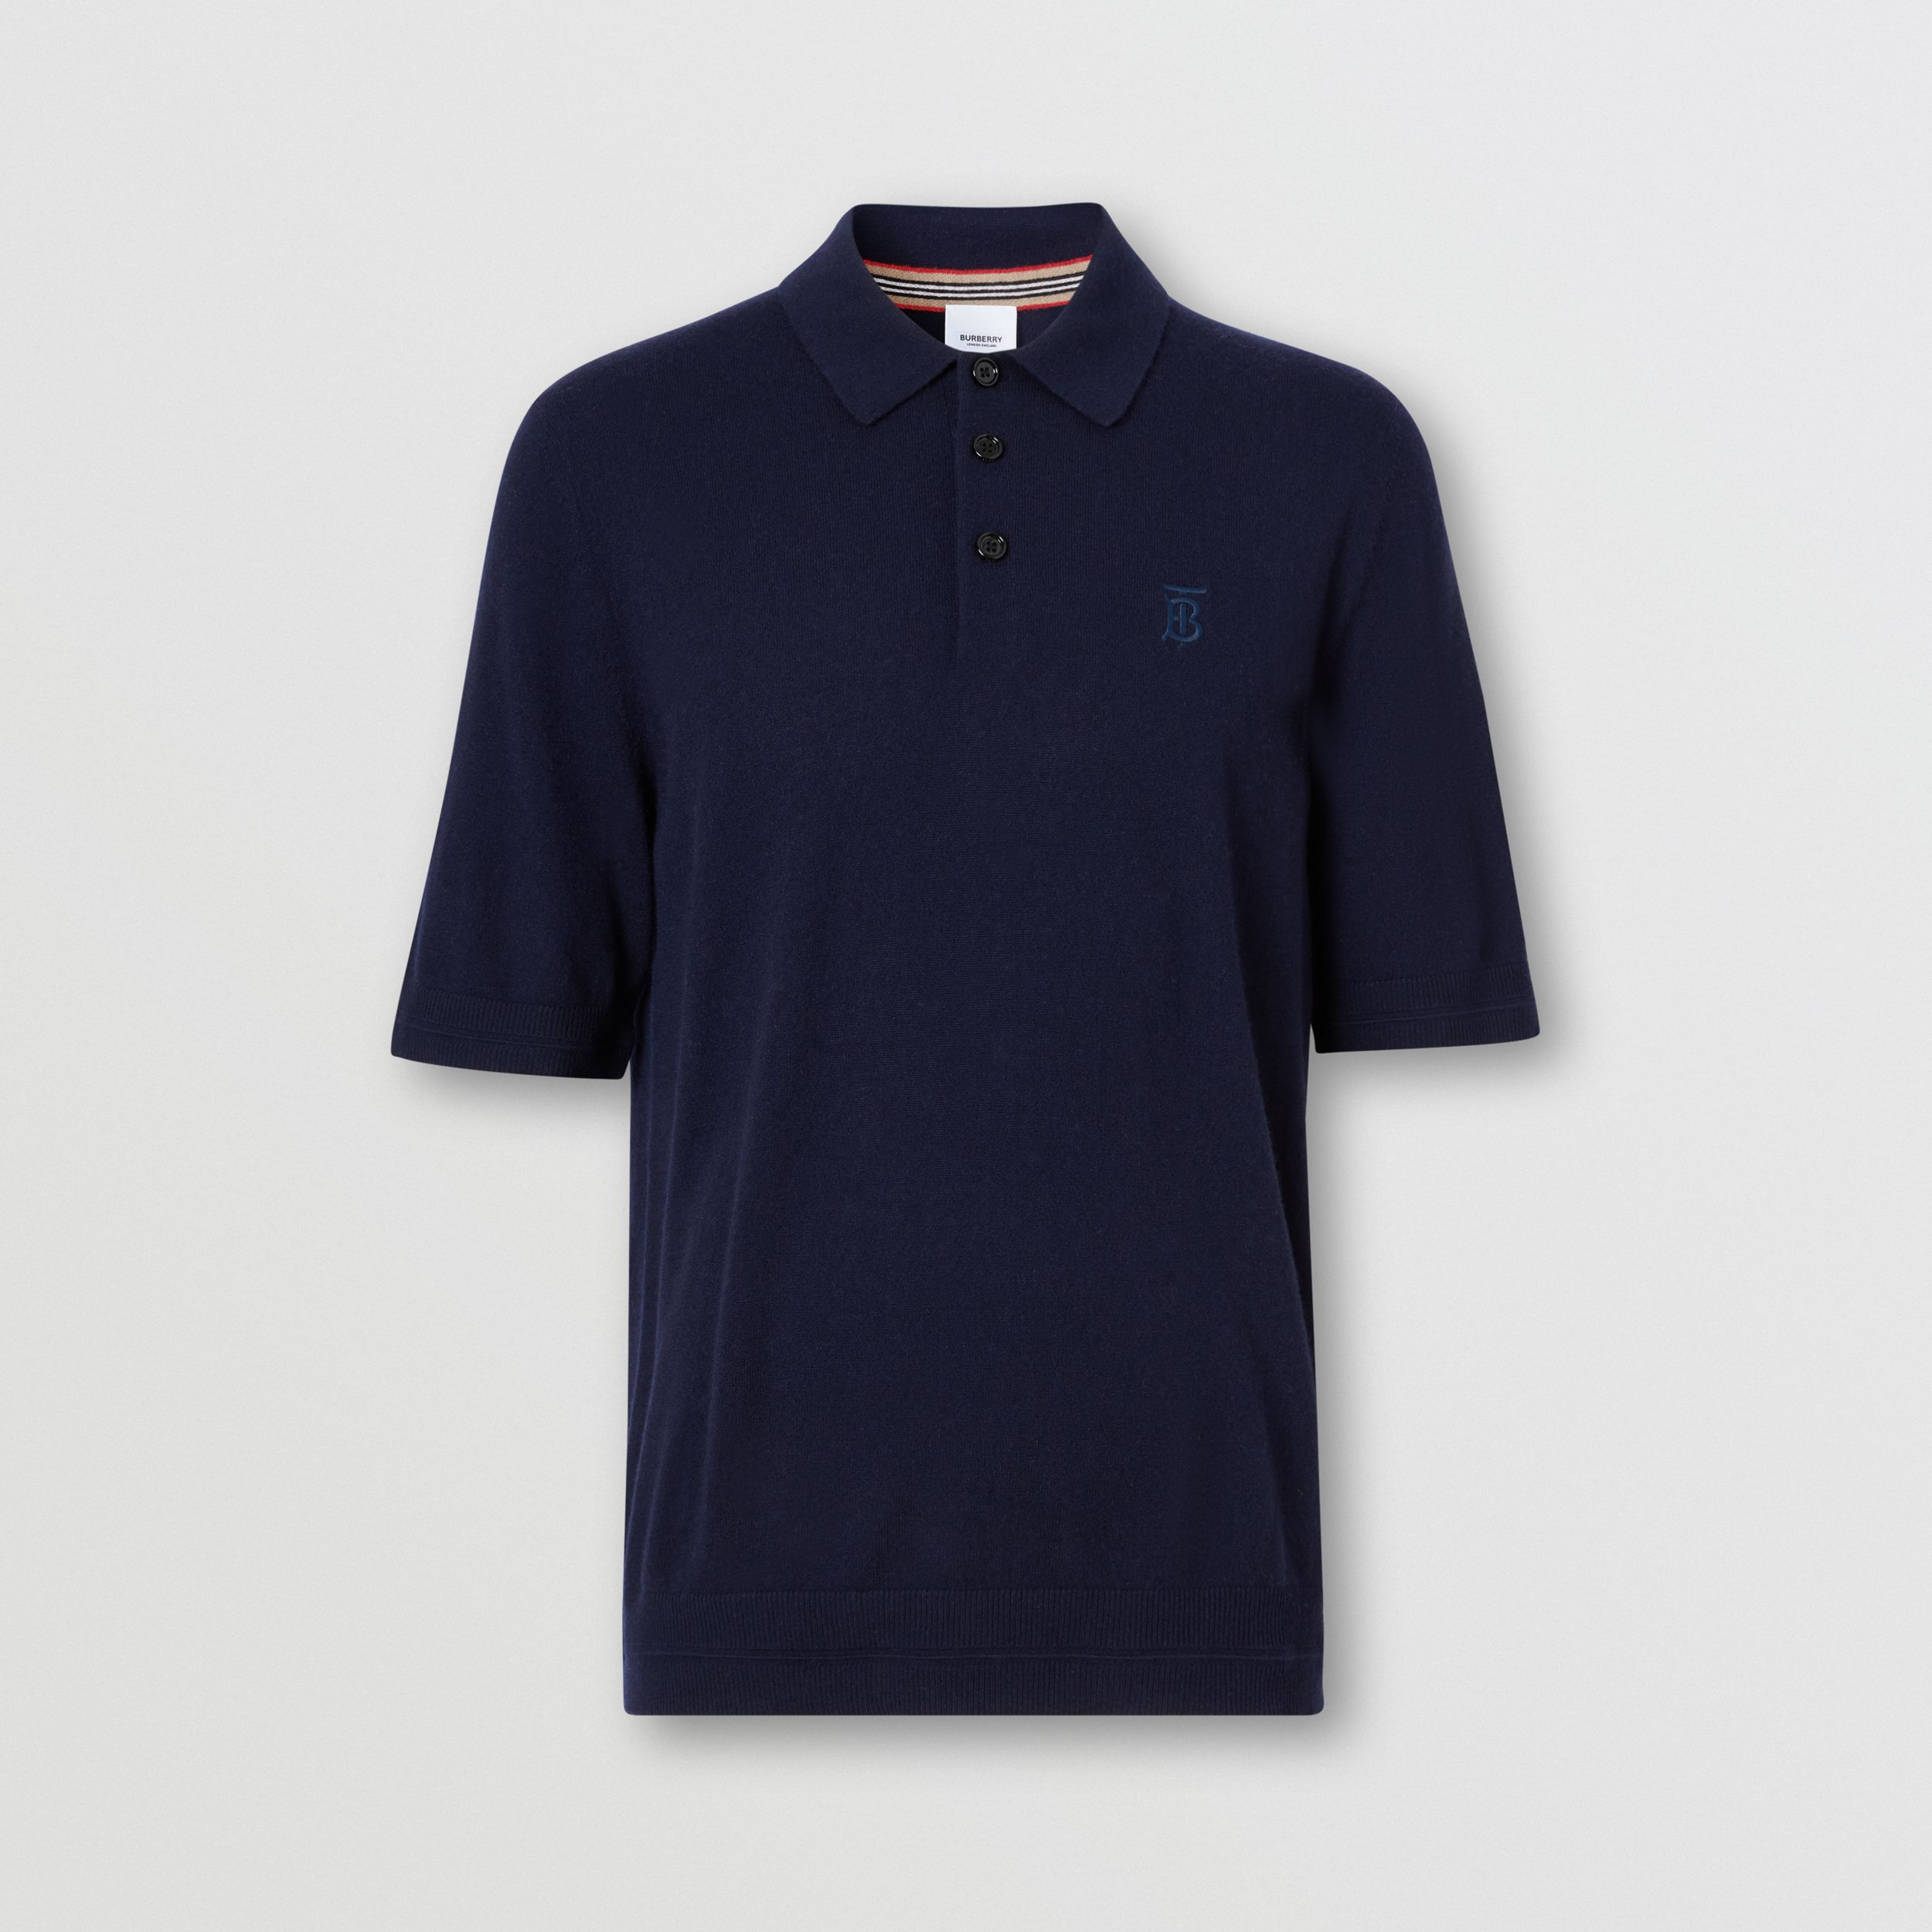 Monogram Motif Cashmere Polo Shirt in Navy - Men | Burberry Australia - 4